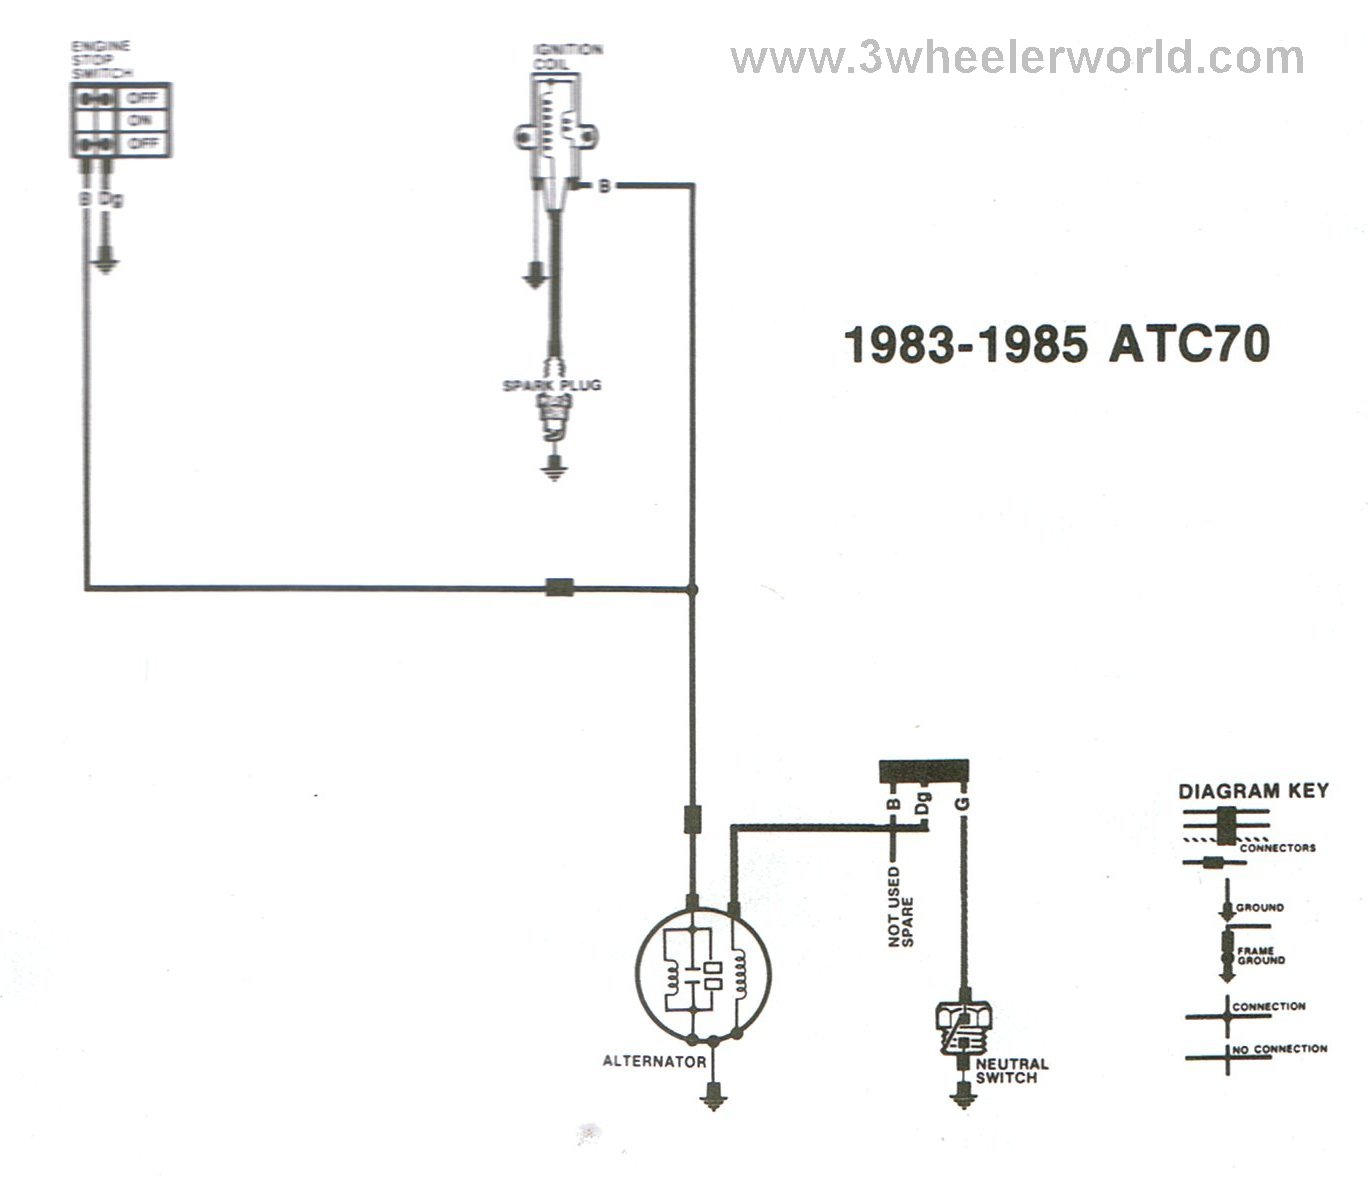 ATC70x83Thru85 3 wheeler world tech help honda wiring diagrams atc 70 wiring diagram at couponss.co